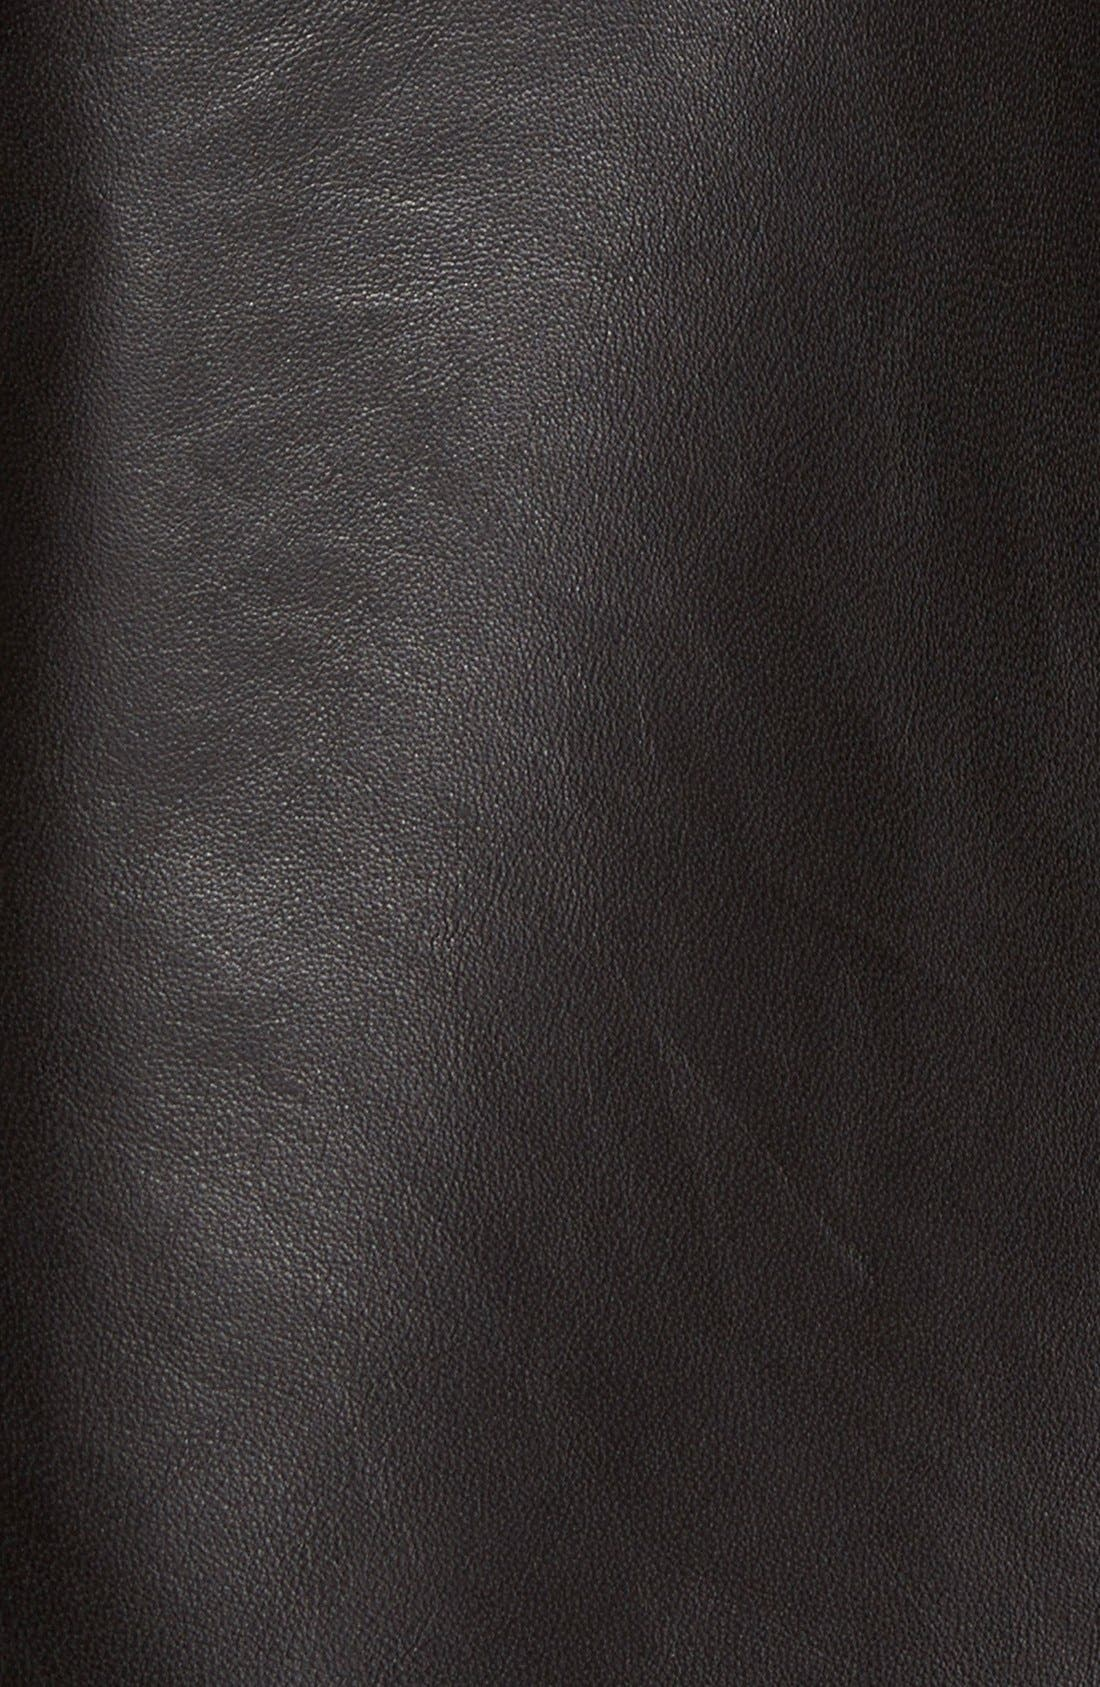 Hooded Leather Jacket,                             Alternate thumbnail 6, color,                             001